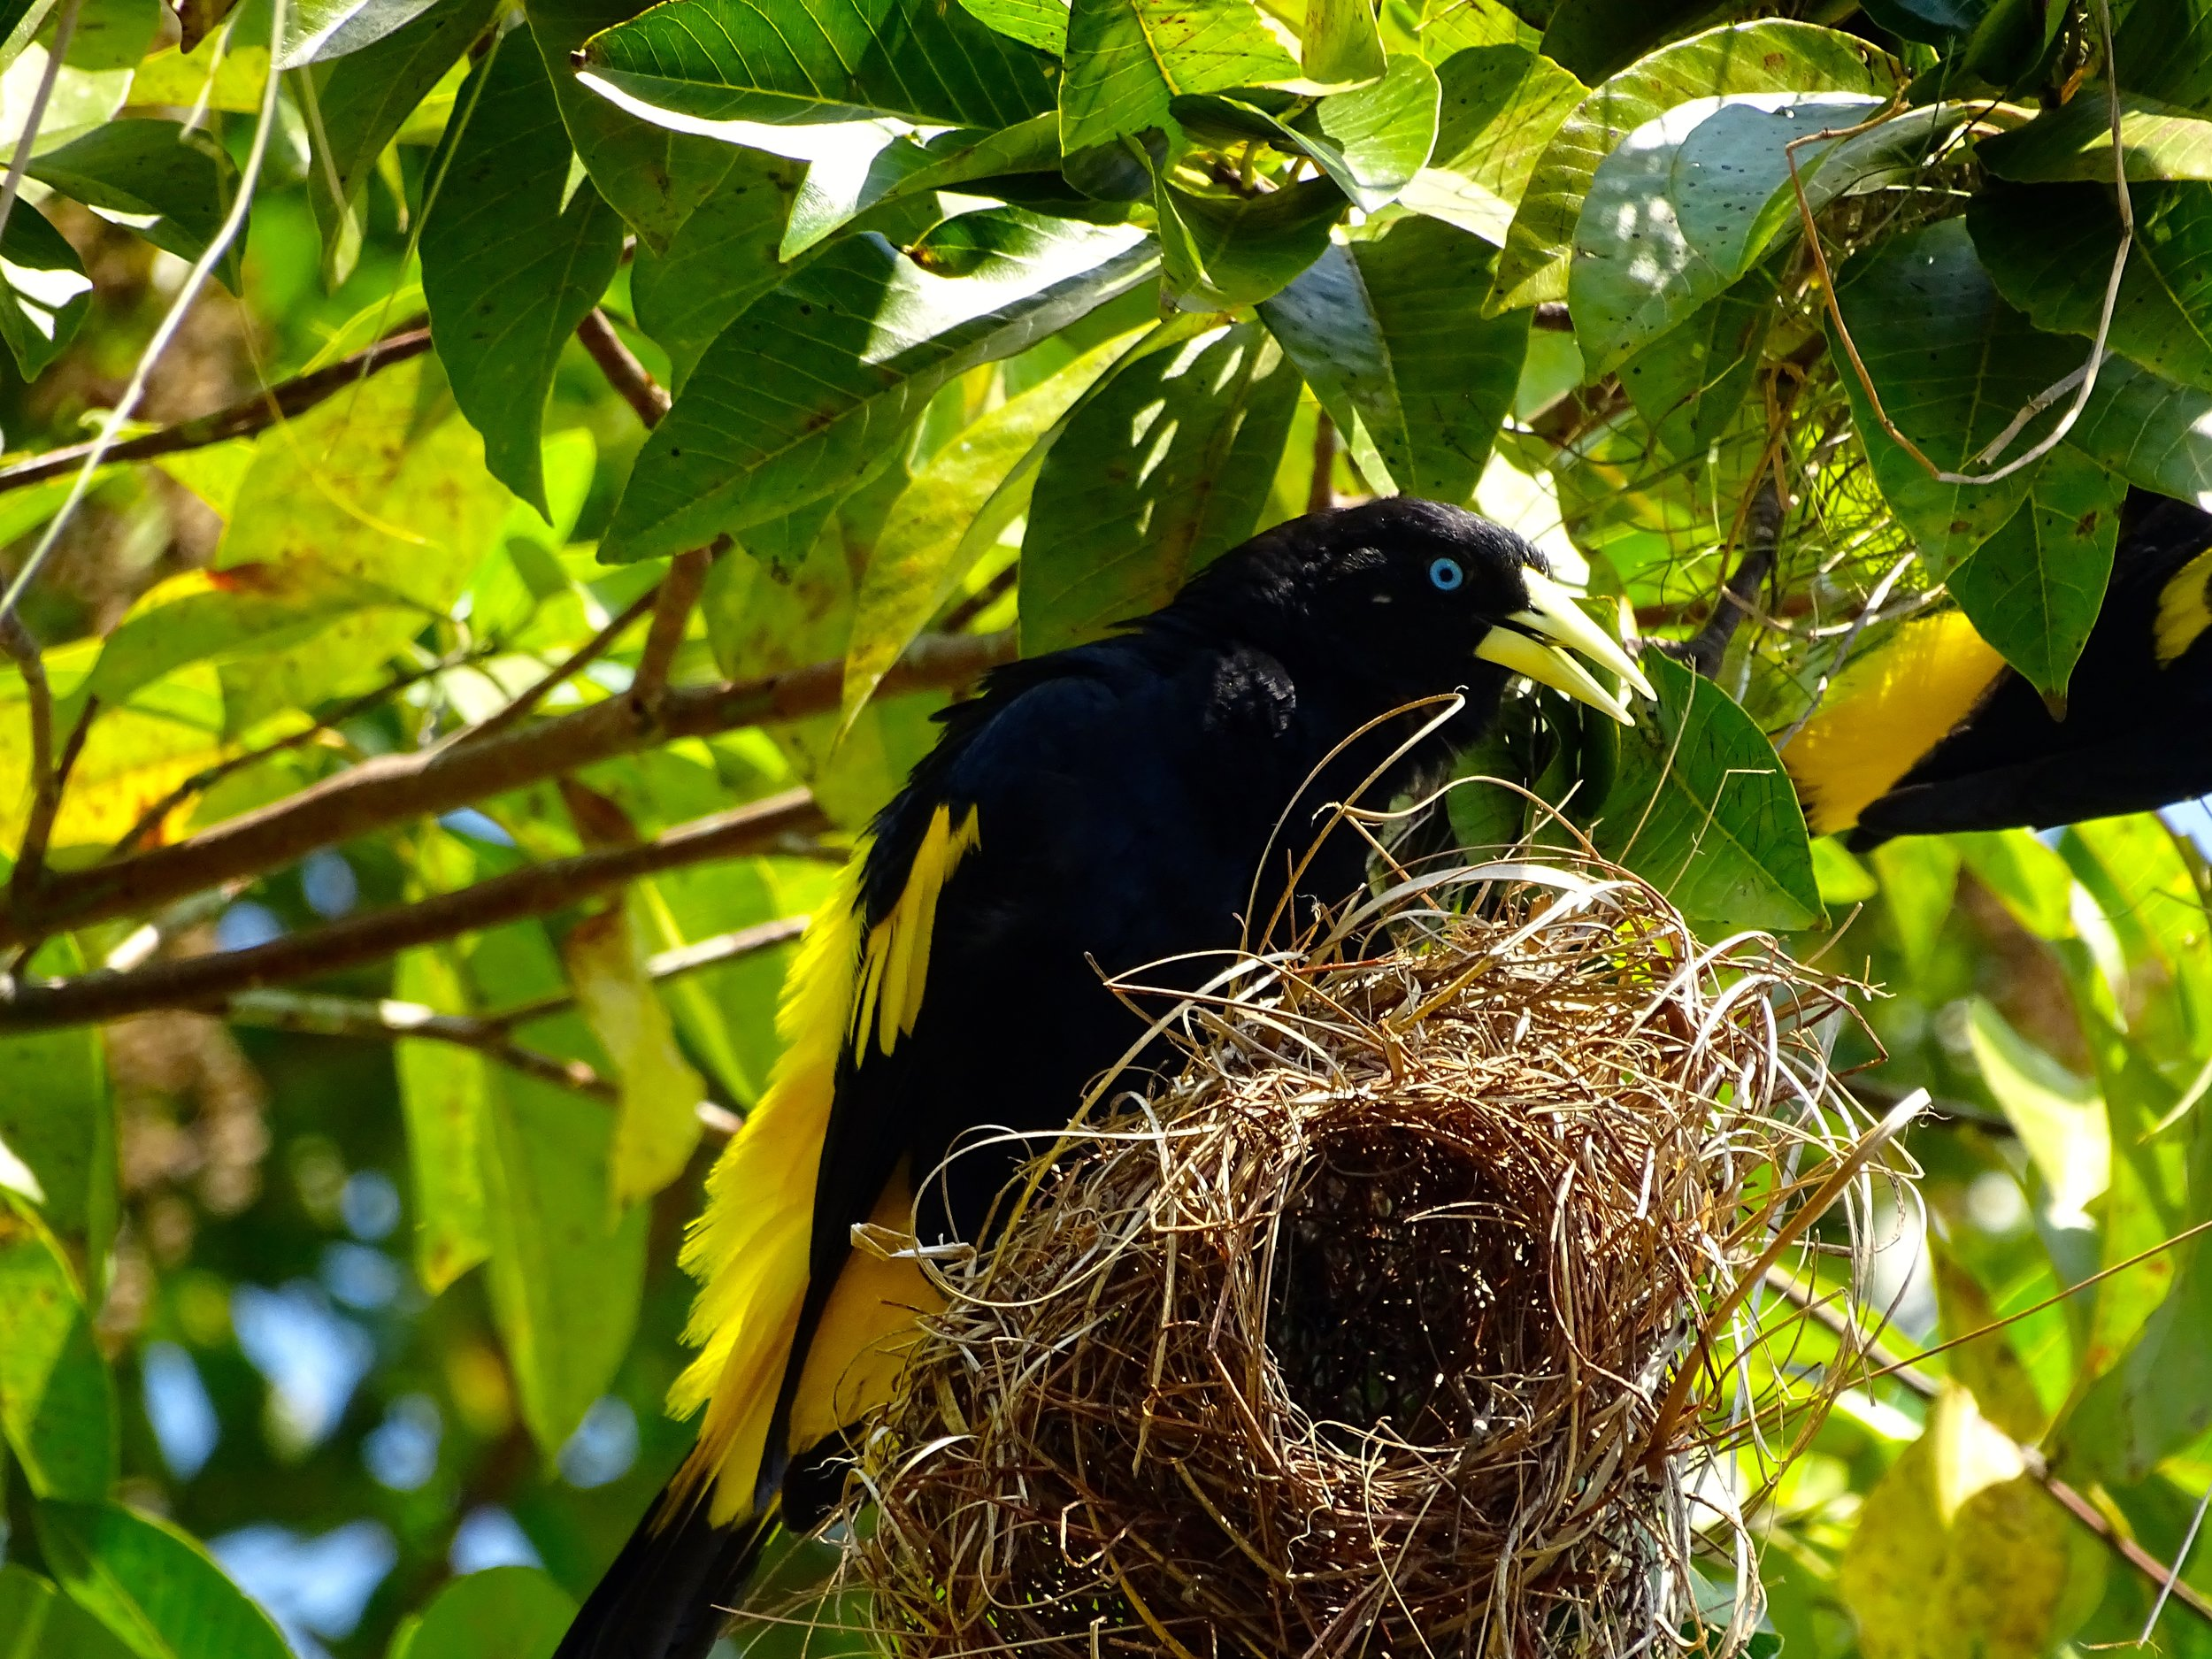 And here's one of the birds who lives in those nests.  Loud and gregarious, they were fun to have around.